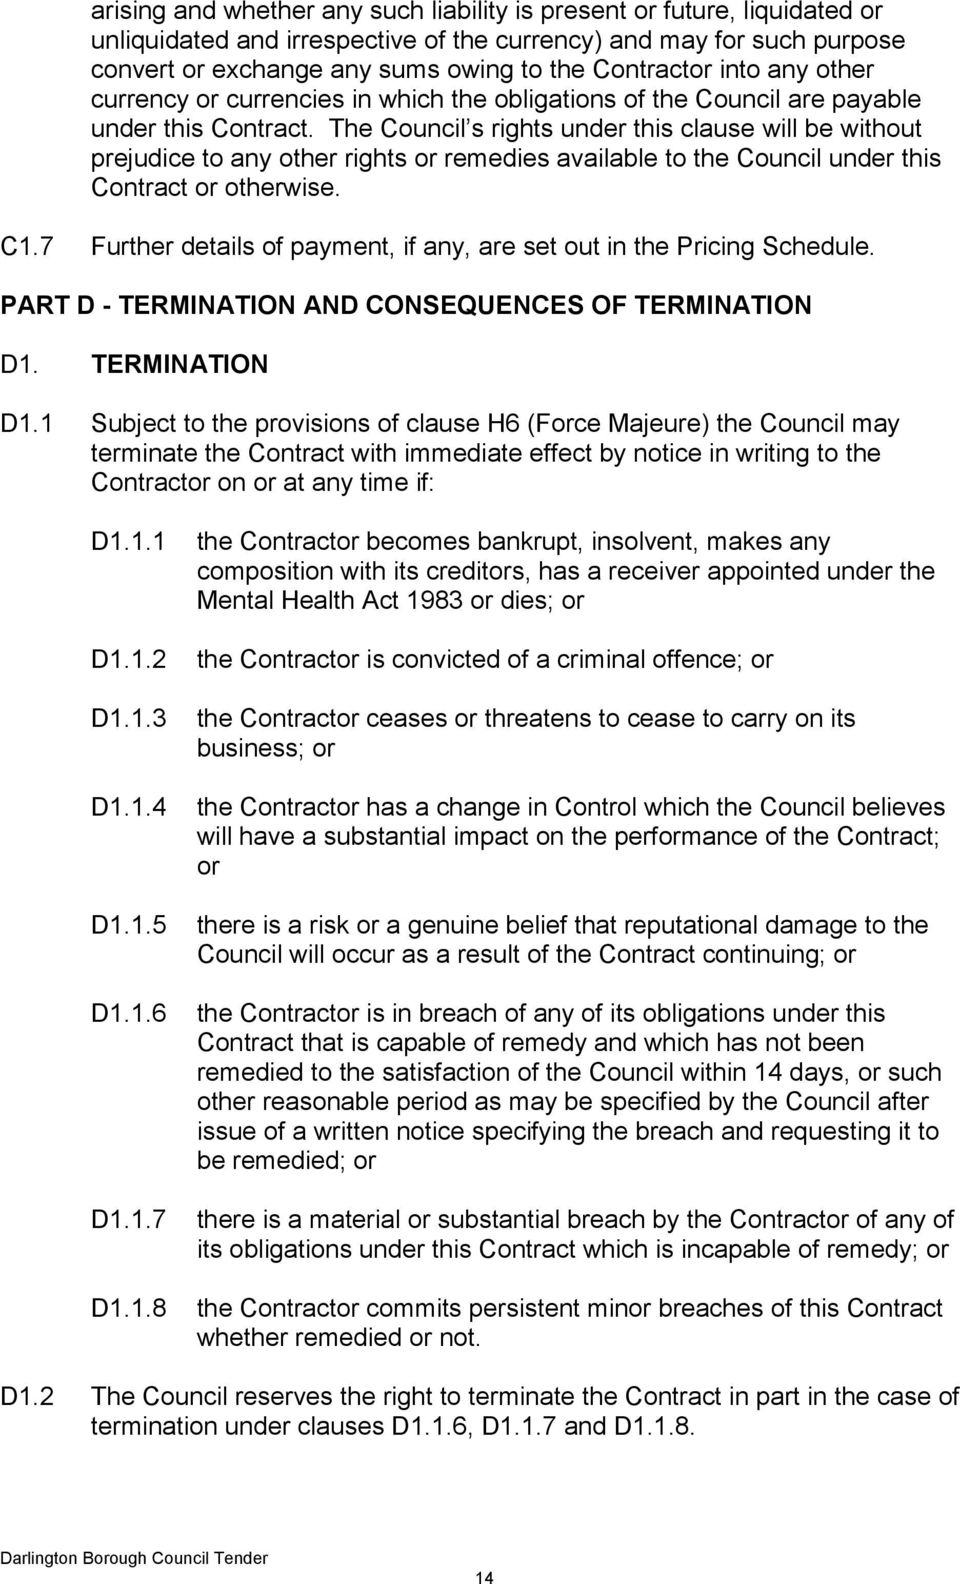 The Council s rights under this clause will be without prejudice to any other rights or remedies available to the Council under this Contract or otherwise. C1.